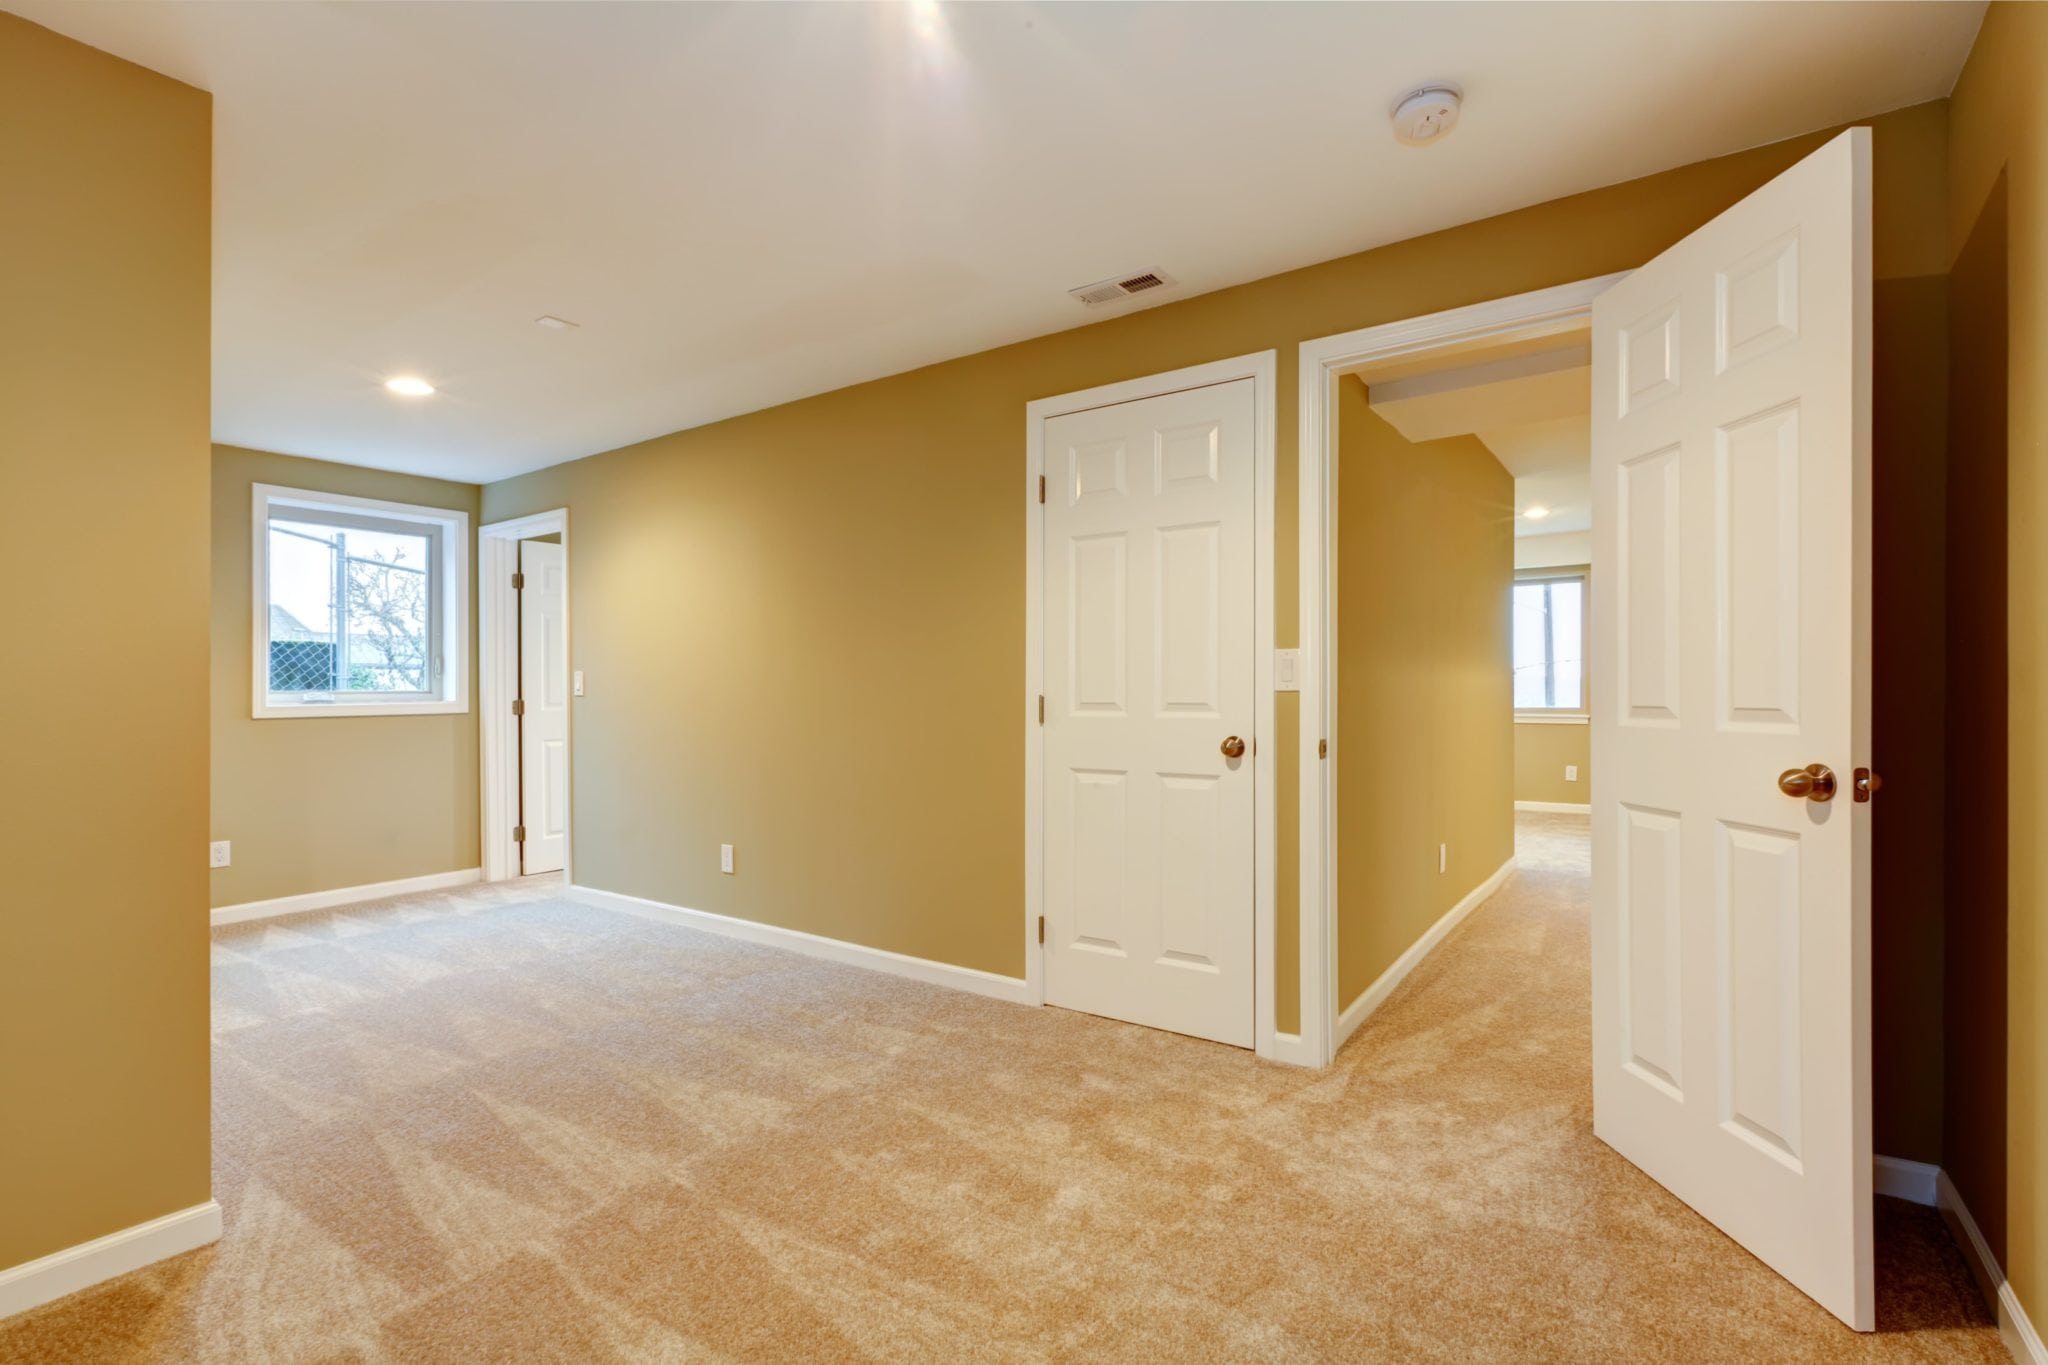 Empty new bedroom with many doors and beige carpet.